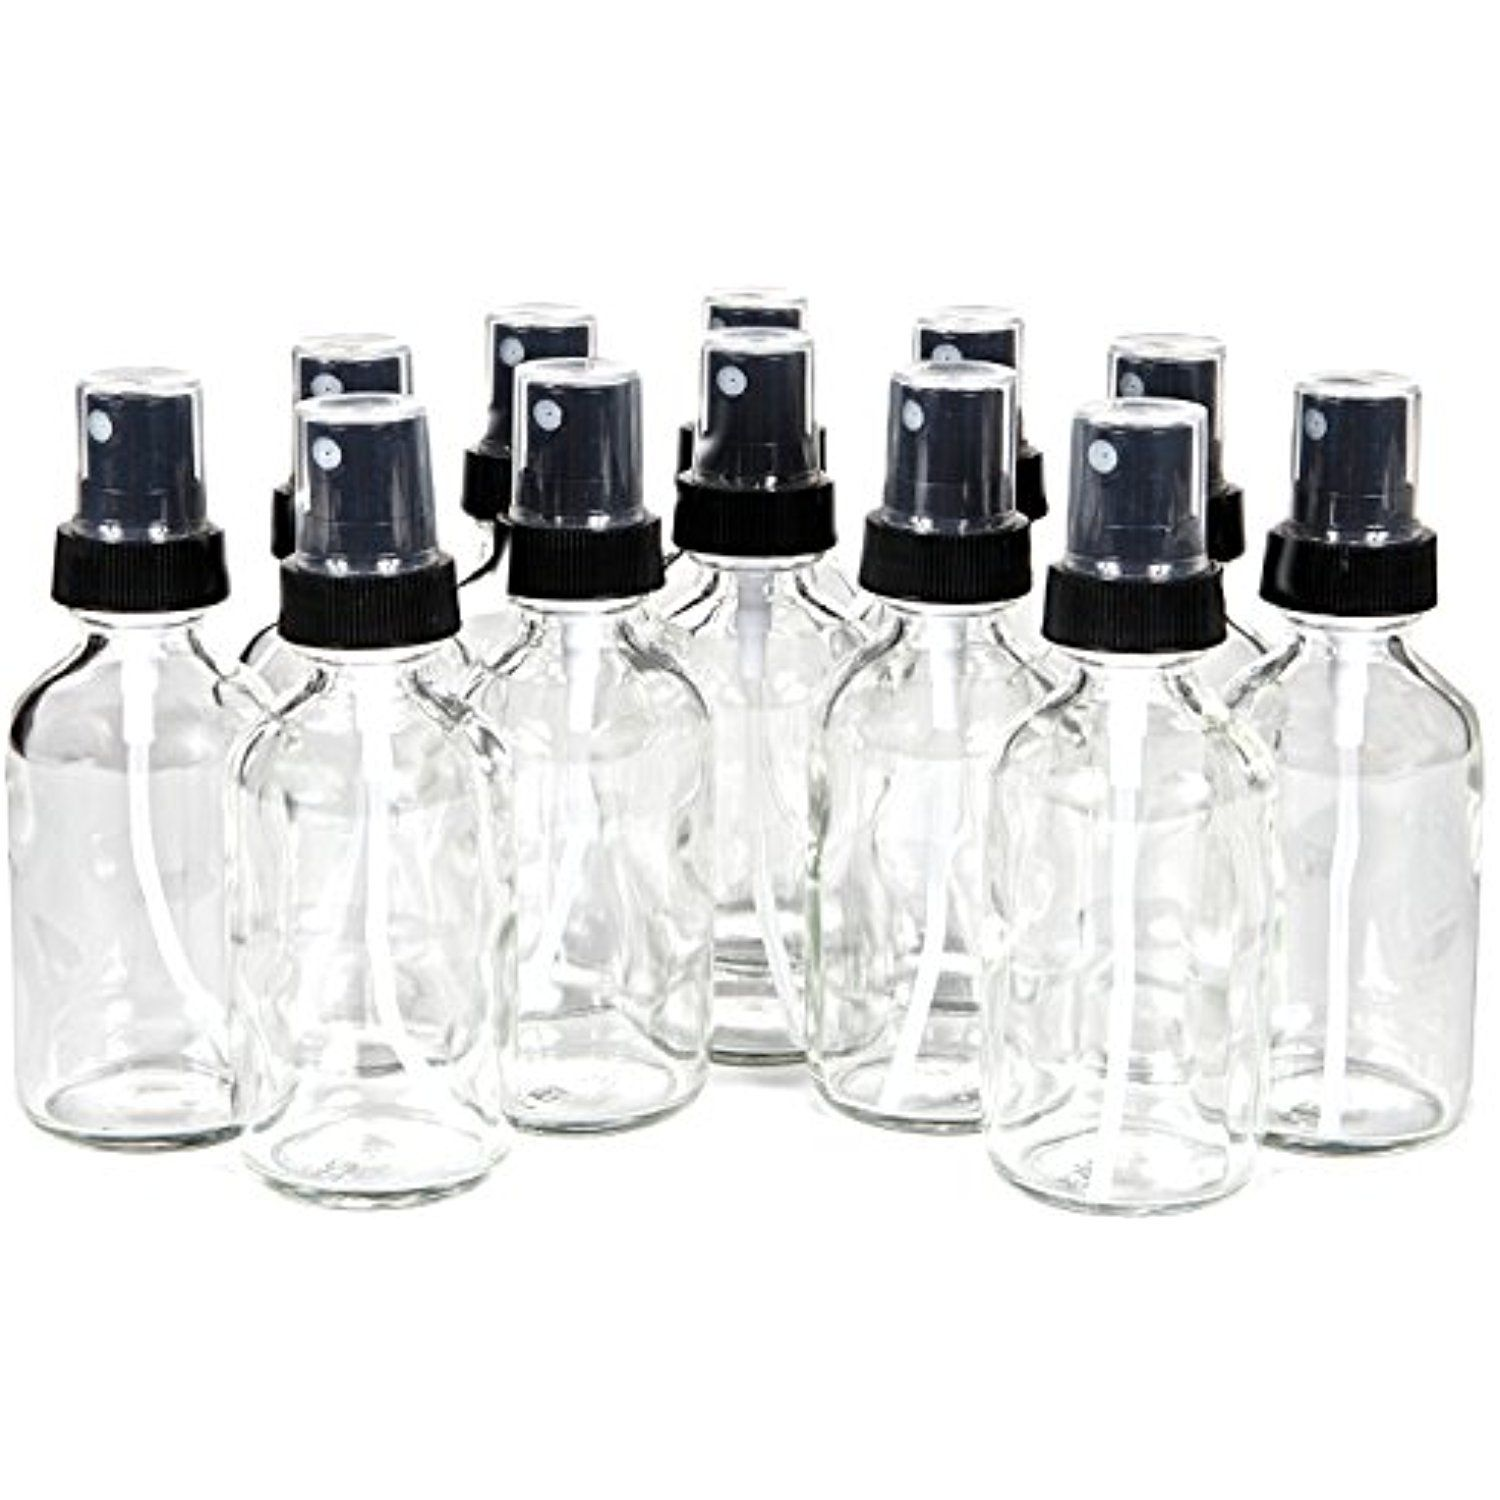 Vivaplex 12 Clear 1 Oz Glass Bottles With Black Fine Mist Sprayers Details Can Be Found By Click Fine Mist Sprayer Small Glass Bottles Glass Spray Bottle